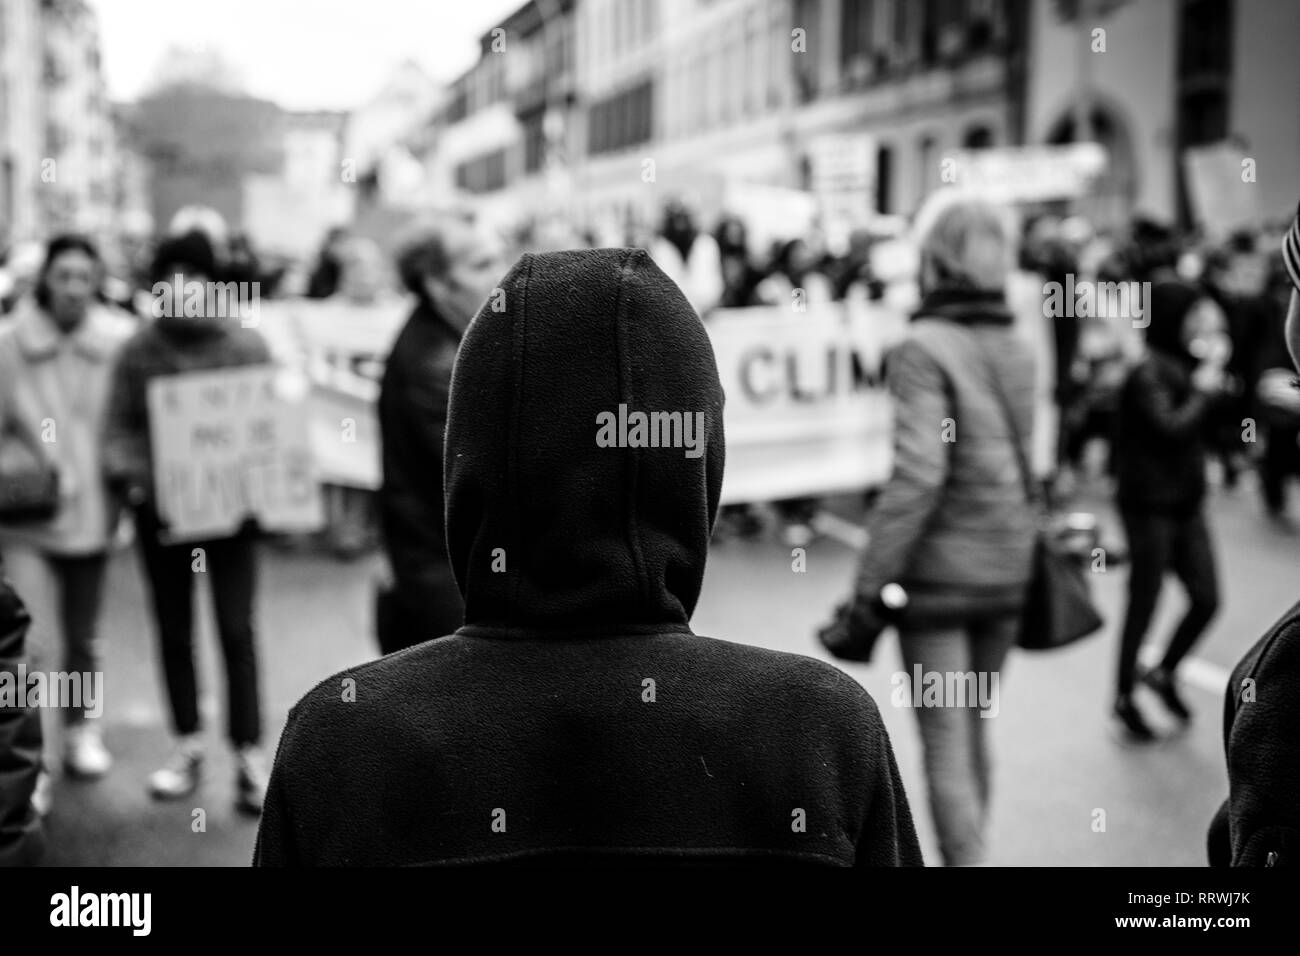 Silhouette looking at crowd marching in Central Strasbourg at the nationwide protest Marche Pour Le Climat black and white - Stock Image